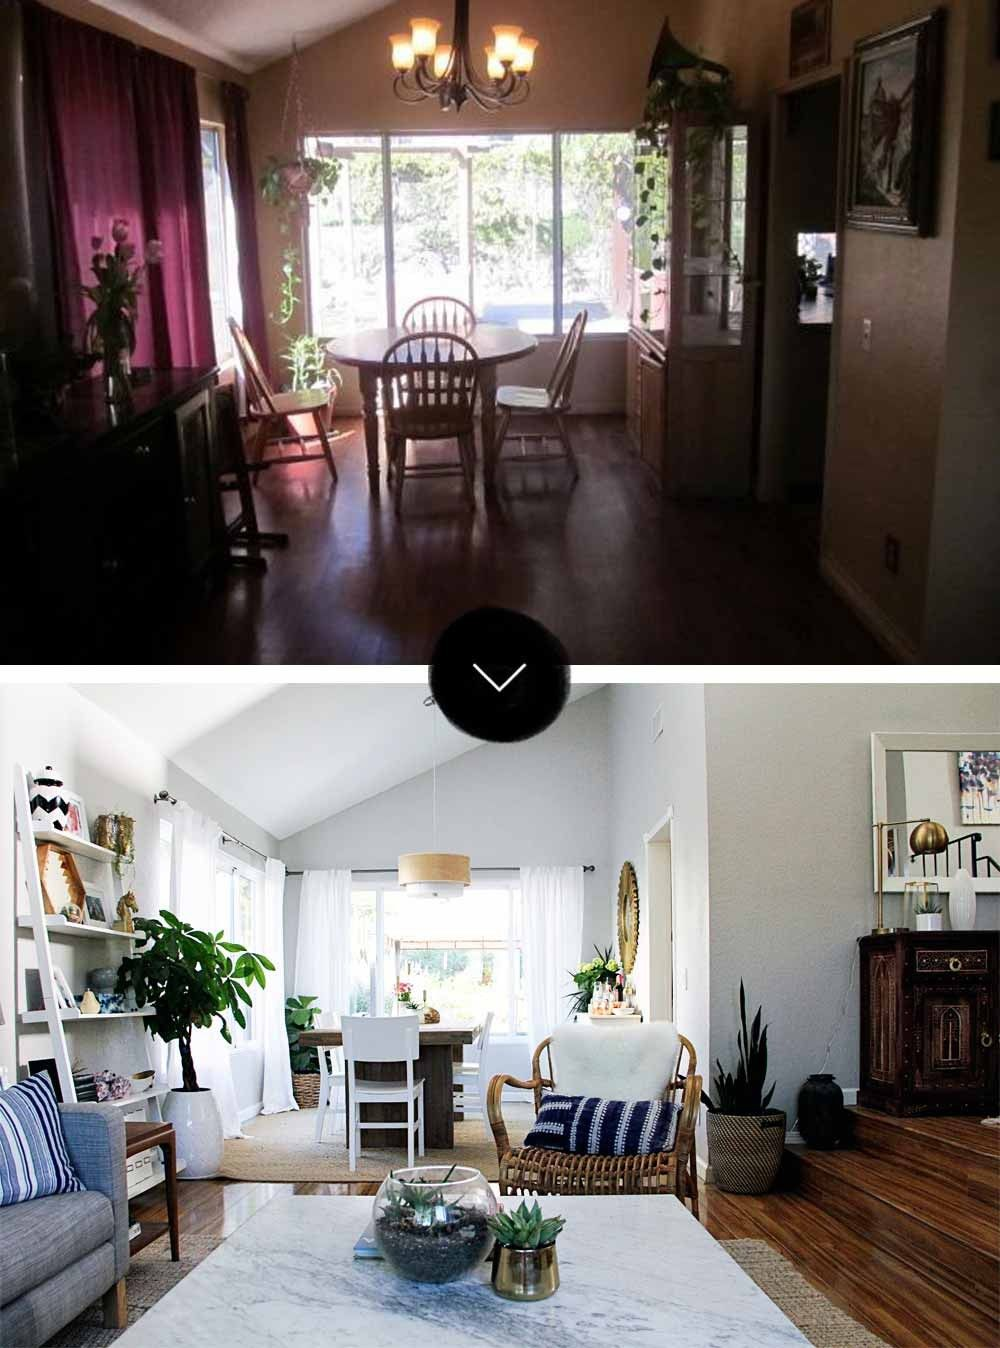 Before & After A Modern Bohemian Fixer Upper in Southern